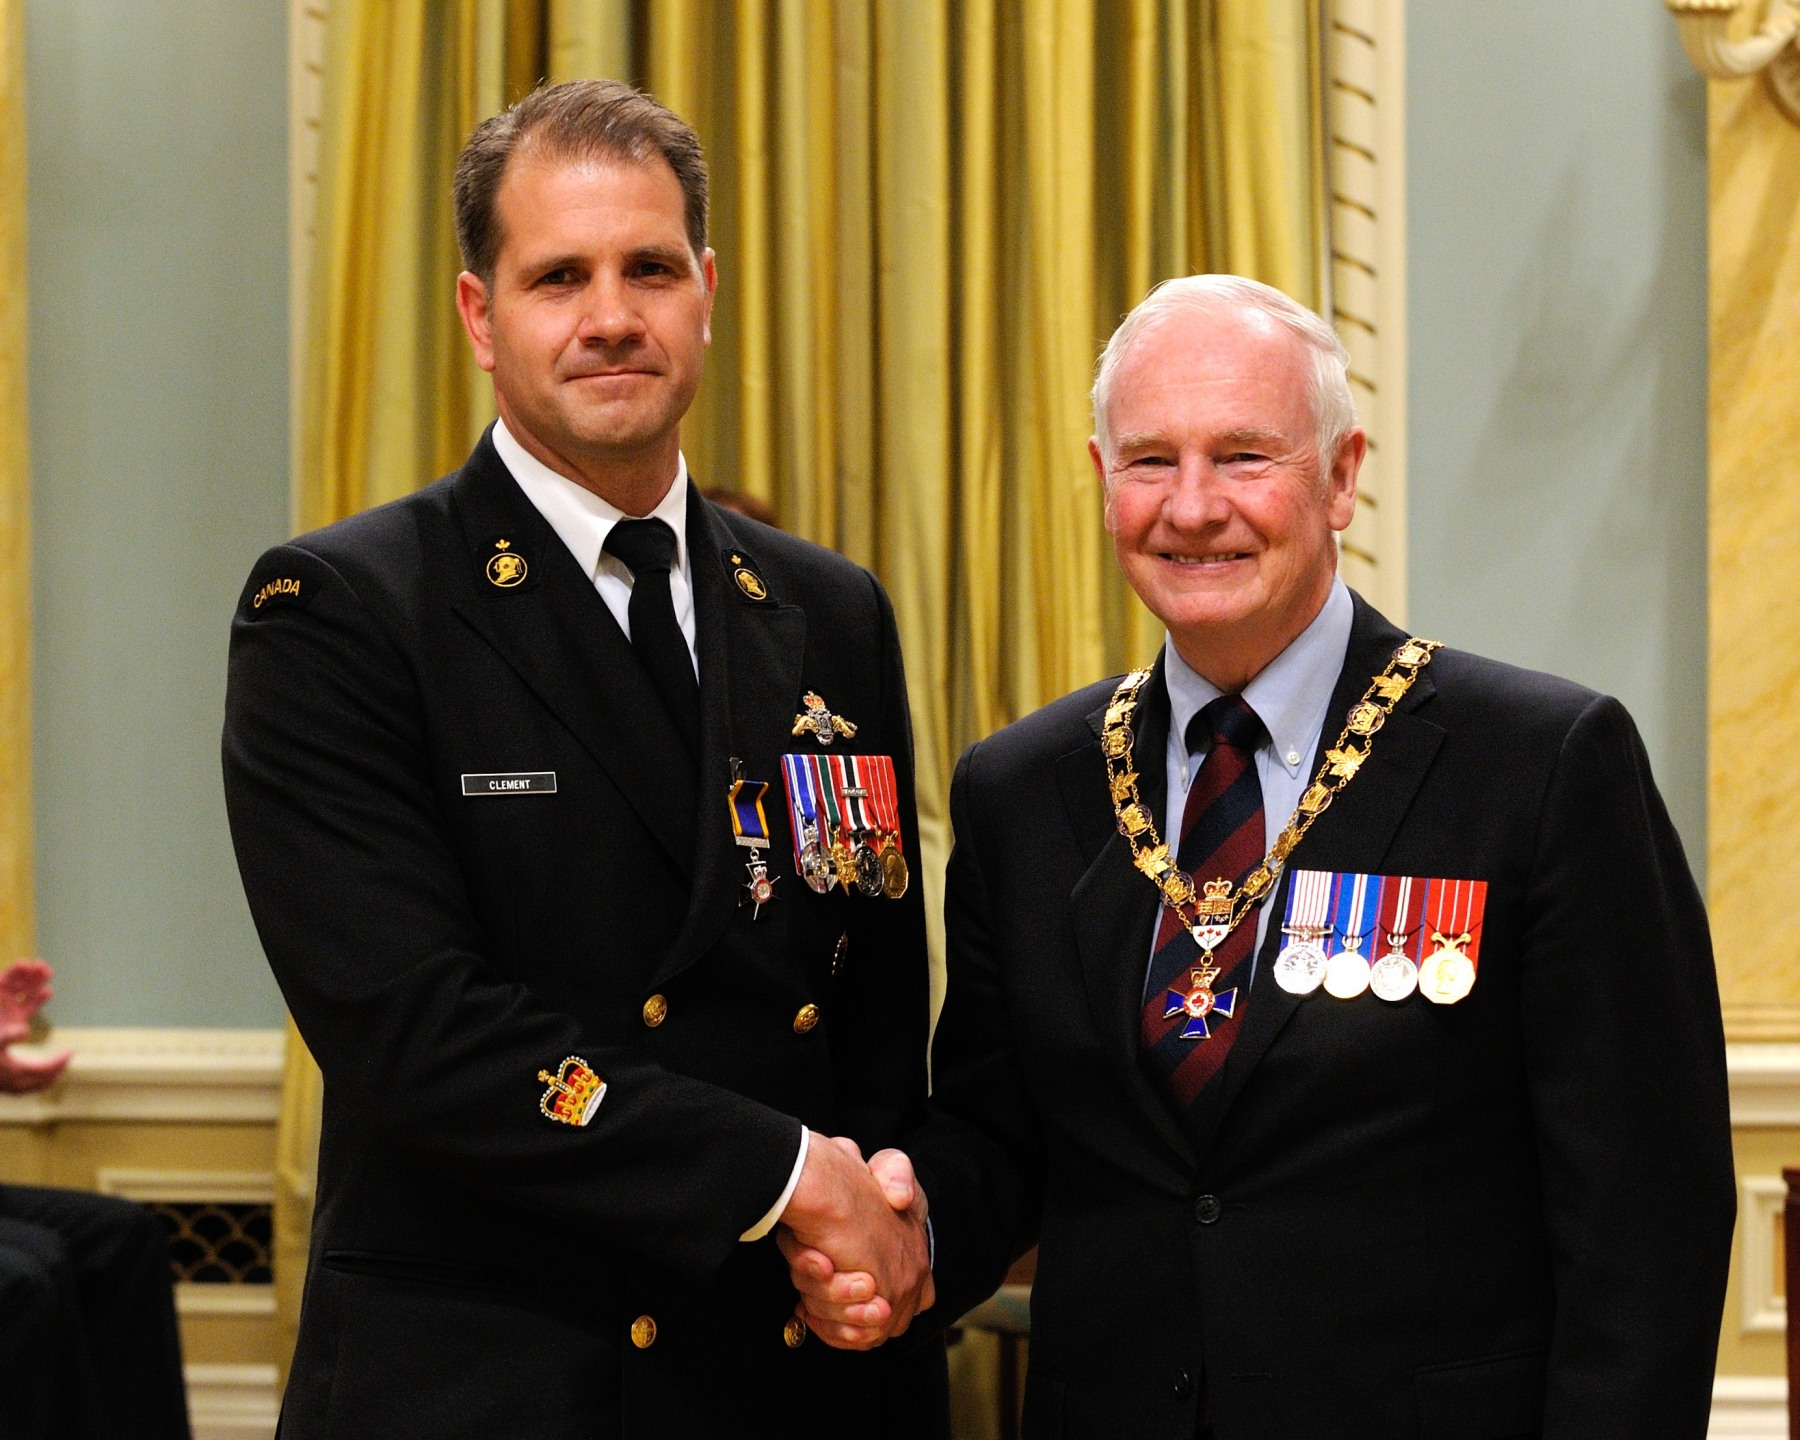 His Excellency presented the Order of Military Merit at the Member level (M.M.M.) to Petty Officer 2nd Class Yves Clément, M.M.M., M.S.M., C.D., Fleet Diving Unit Atlantic, Halifax, Nova Scotia.